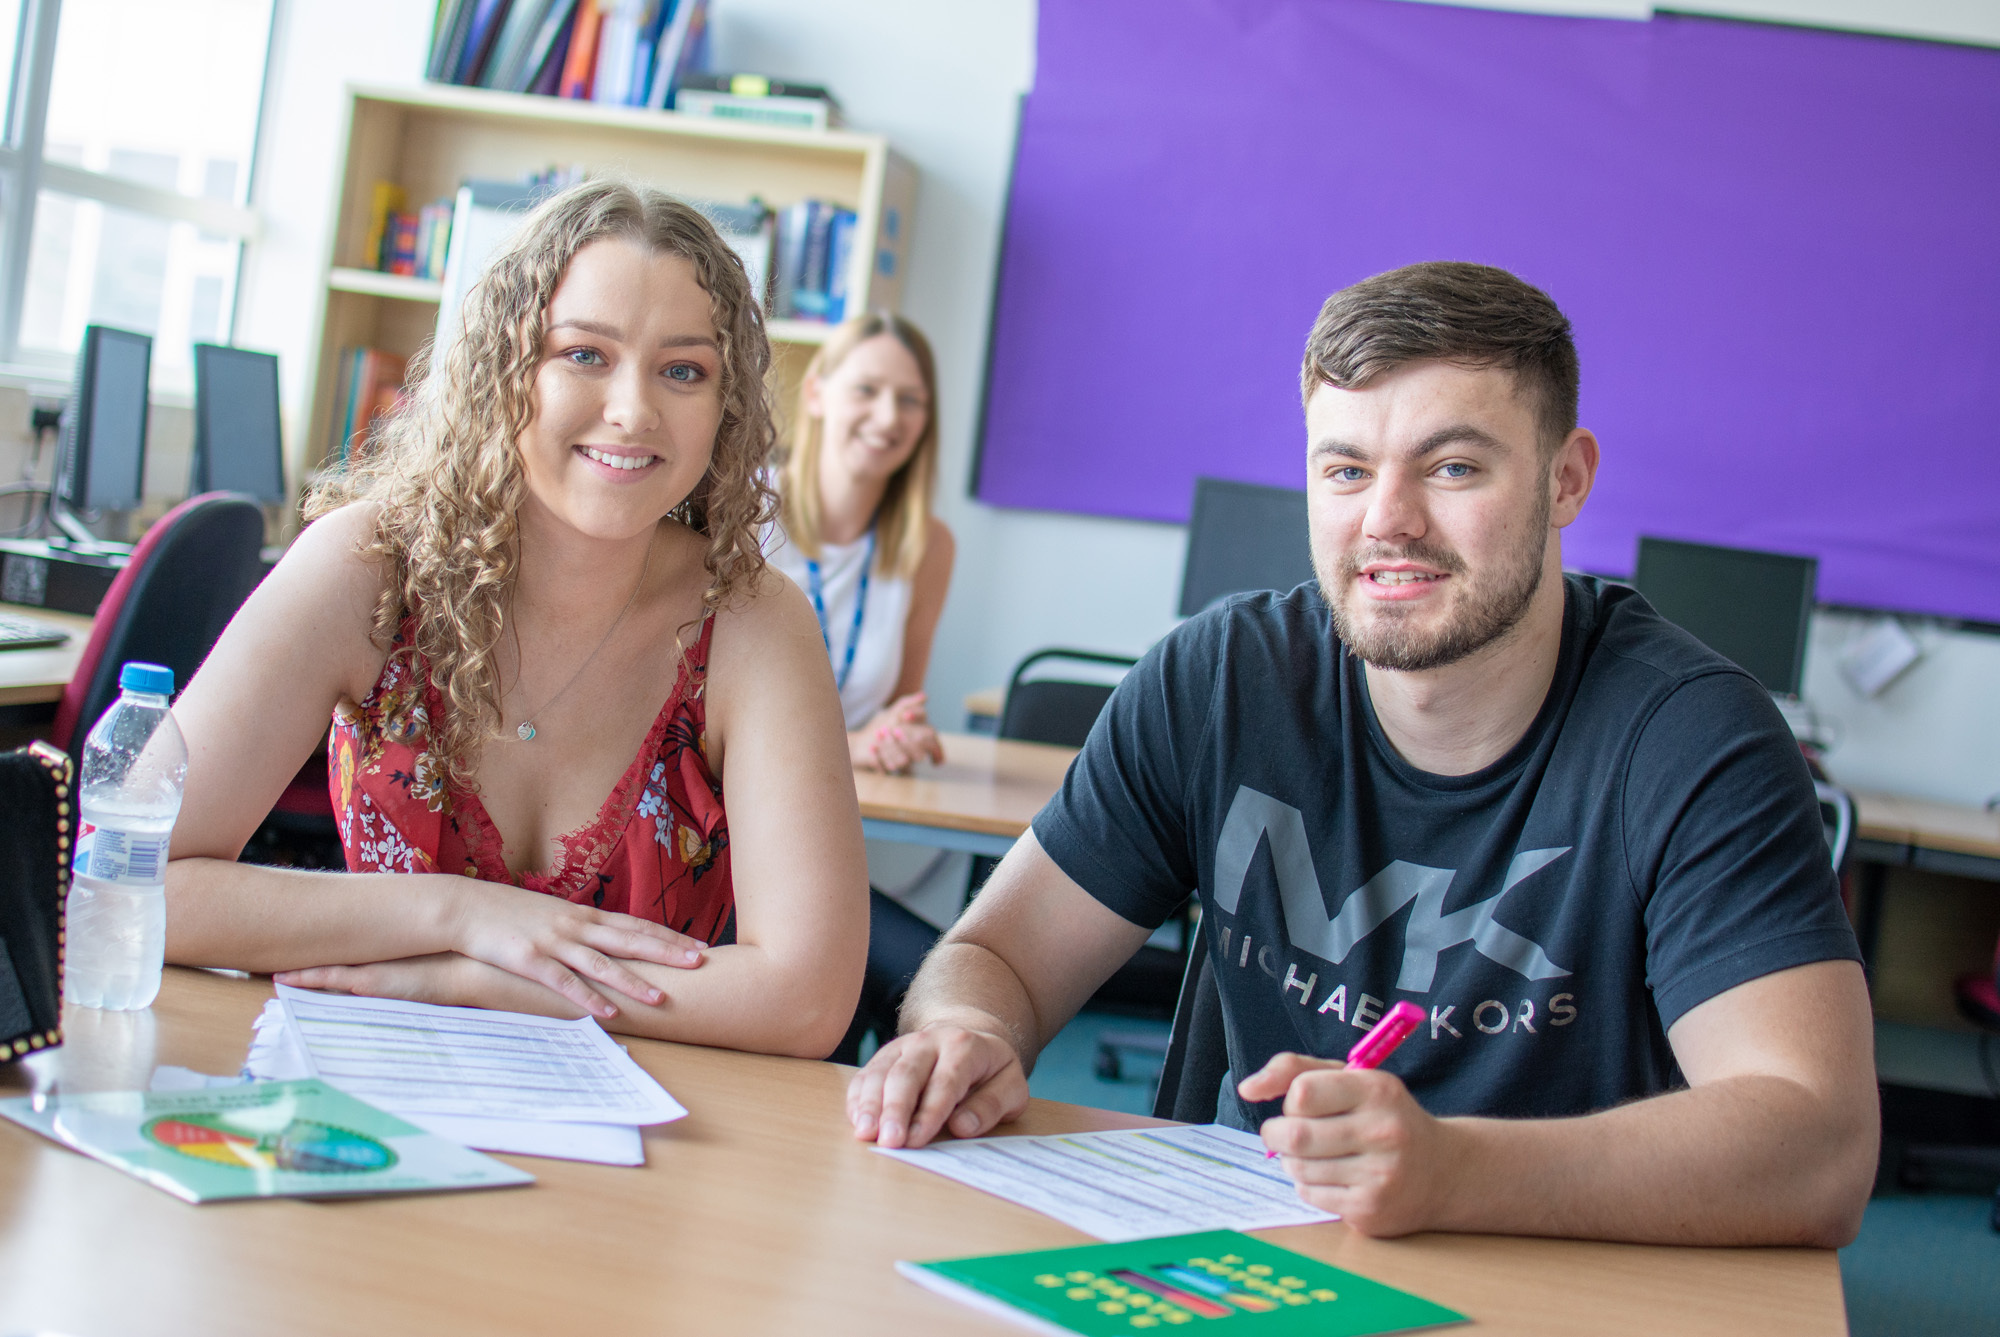 Ella Whitfield and Luke Purcell are the first students to enrol on a new accounting diploma at Riverside College